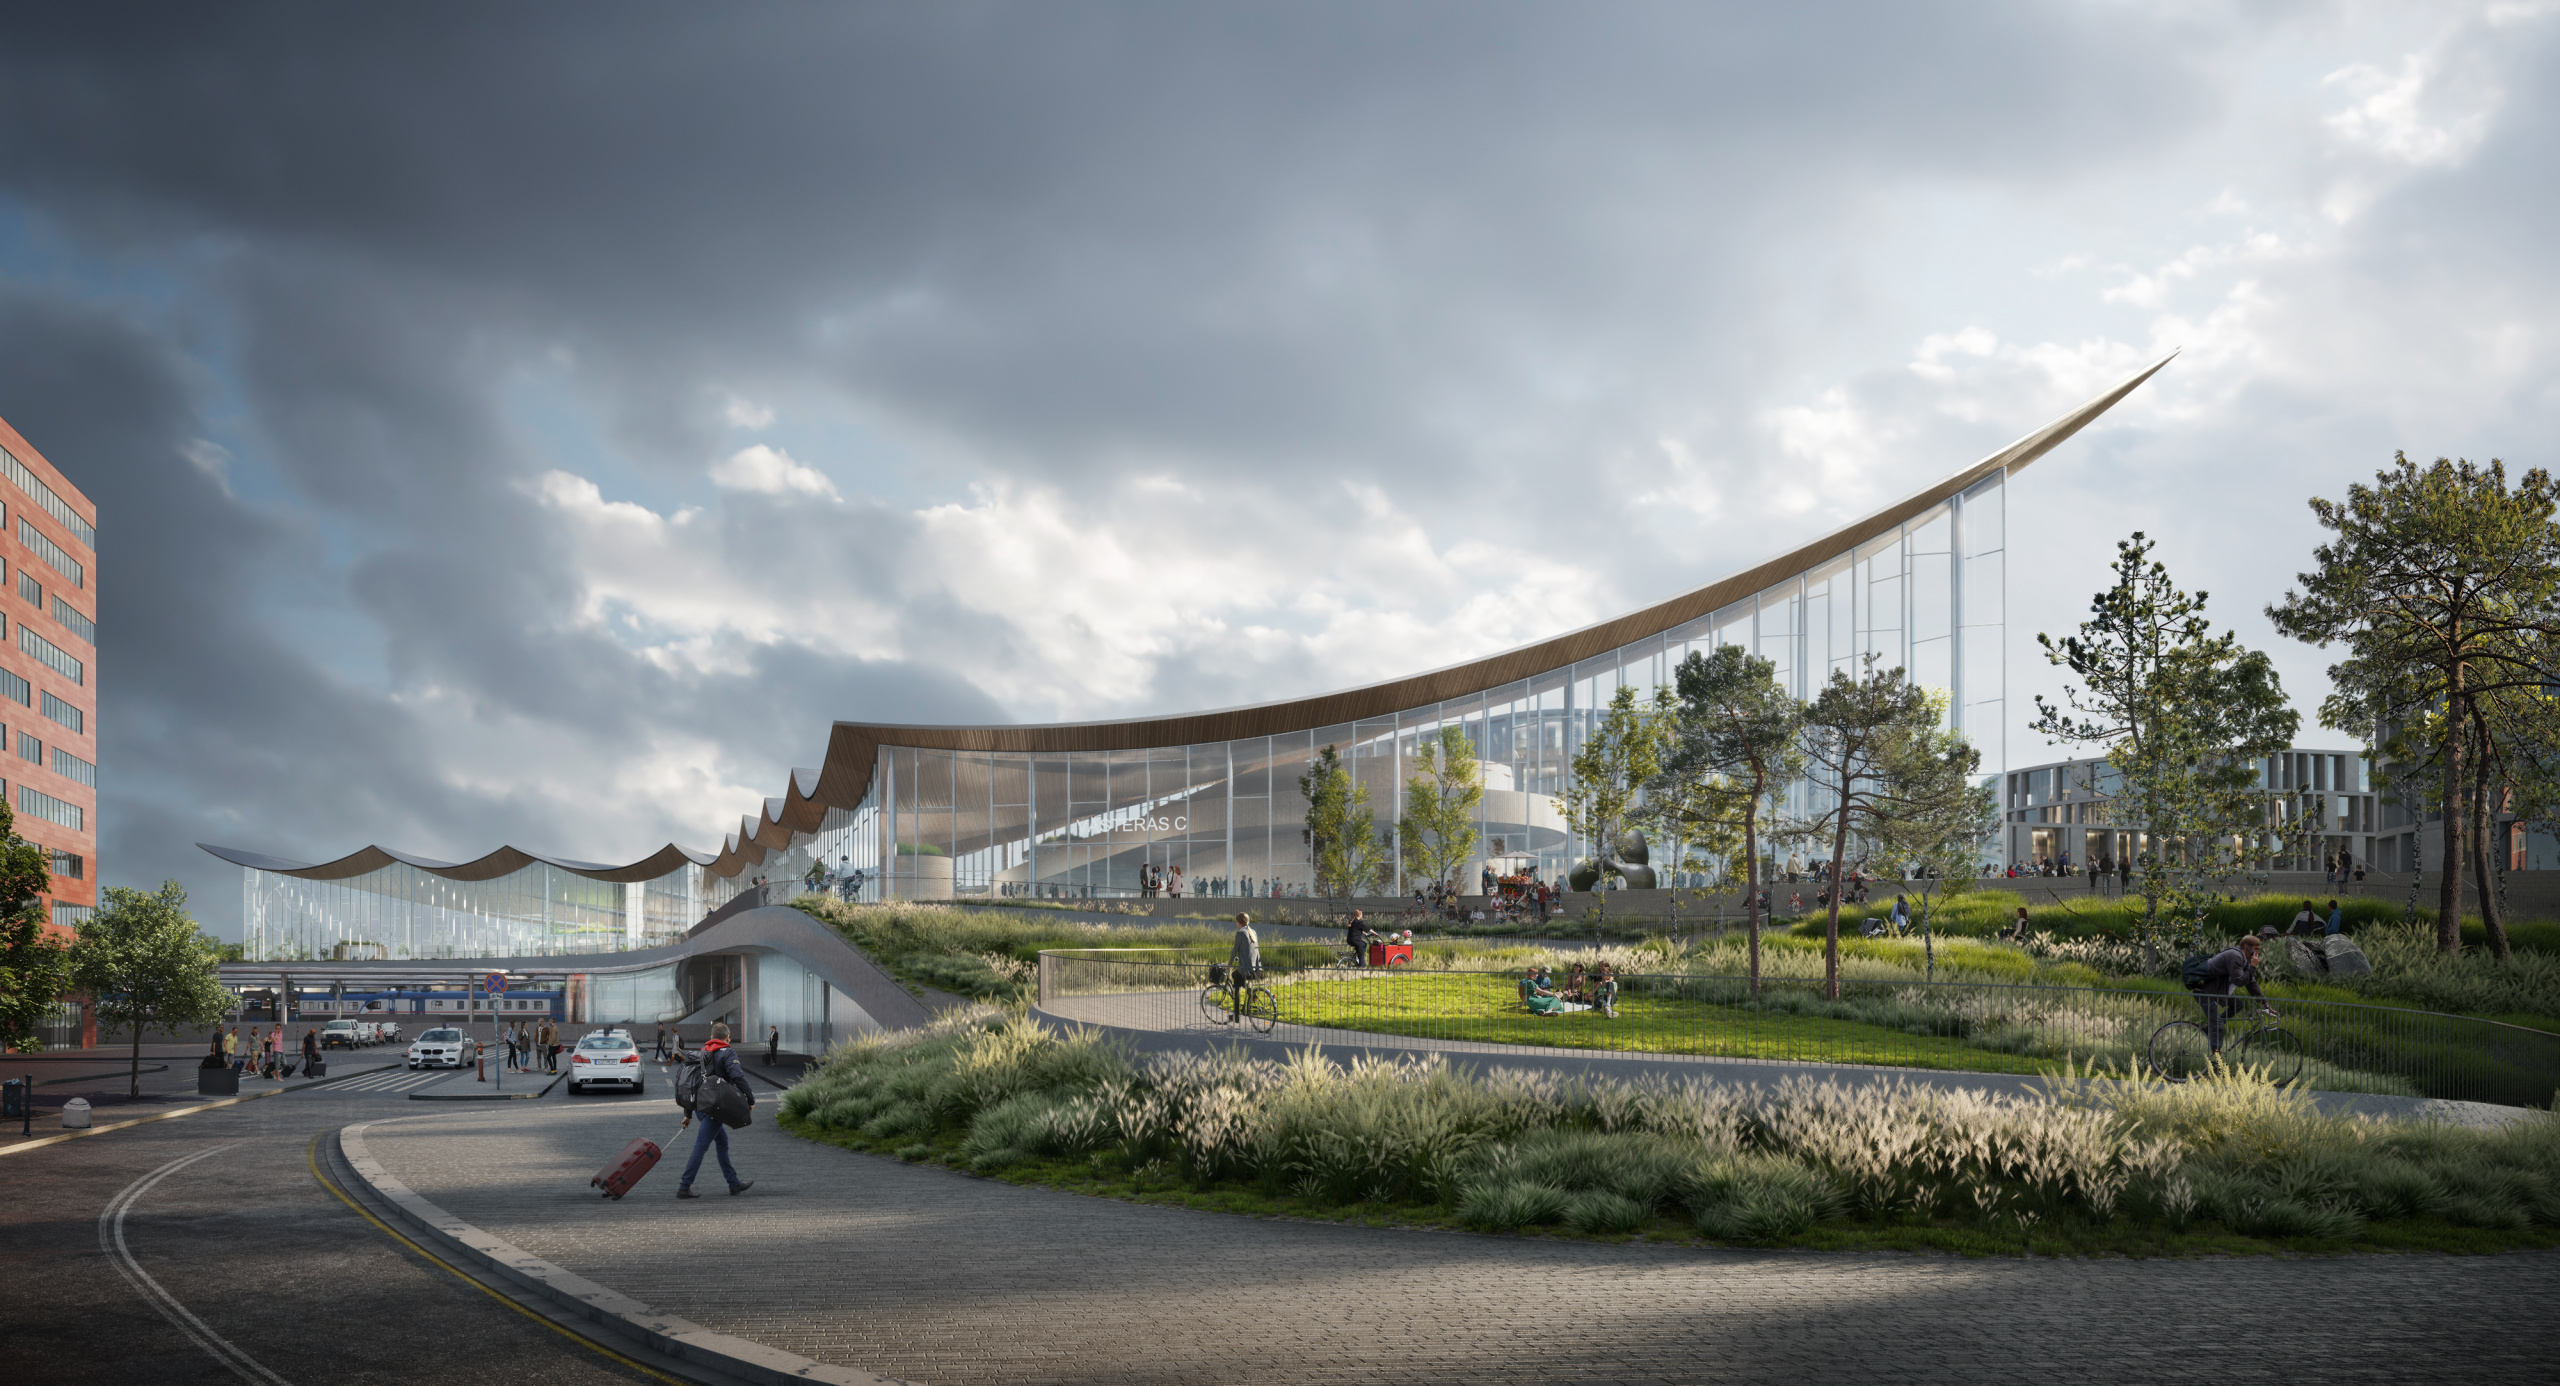 The Västerås Travel Center is expected to be completed in 2025